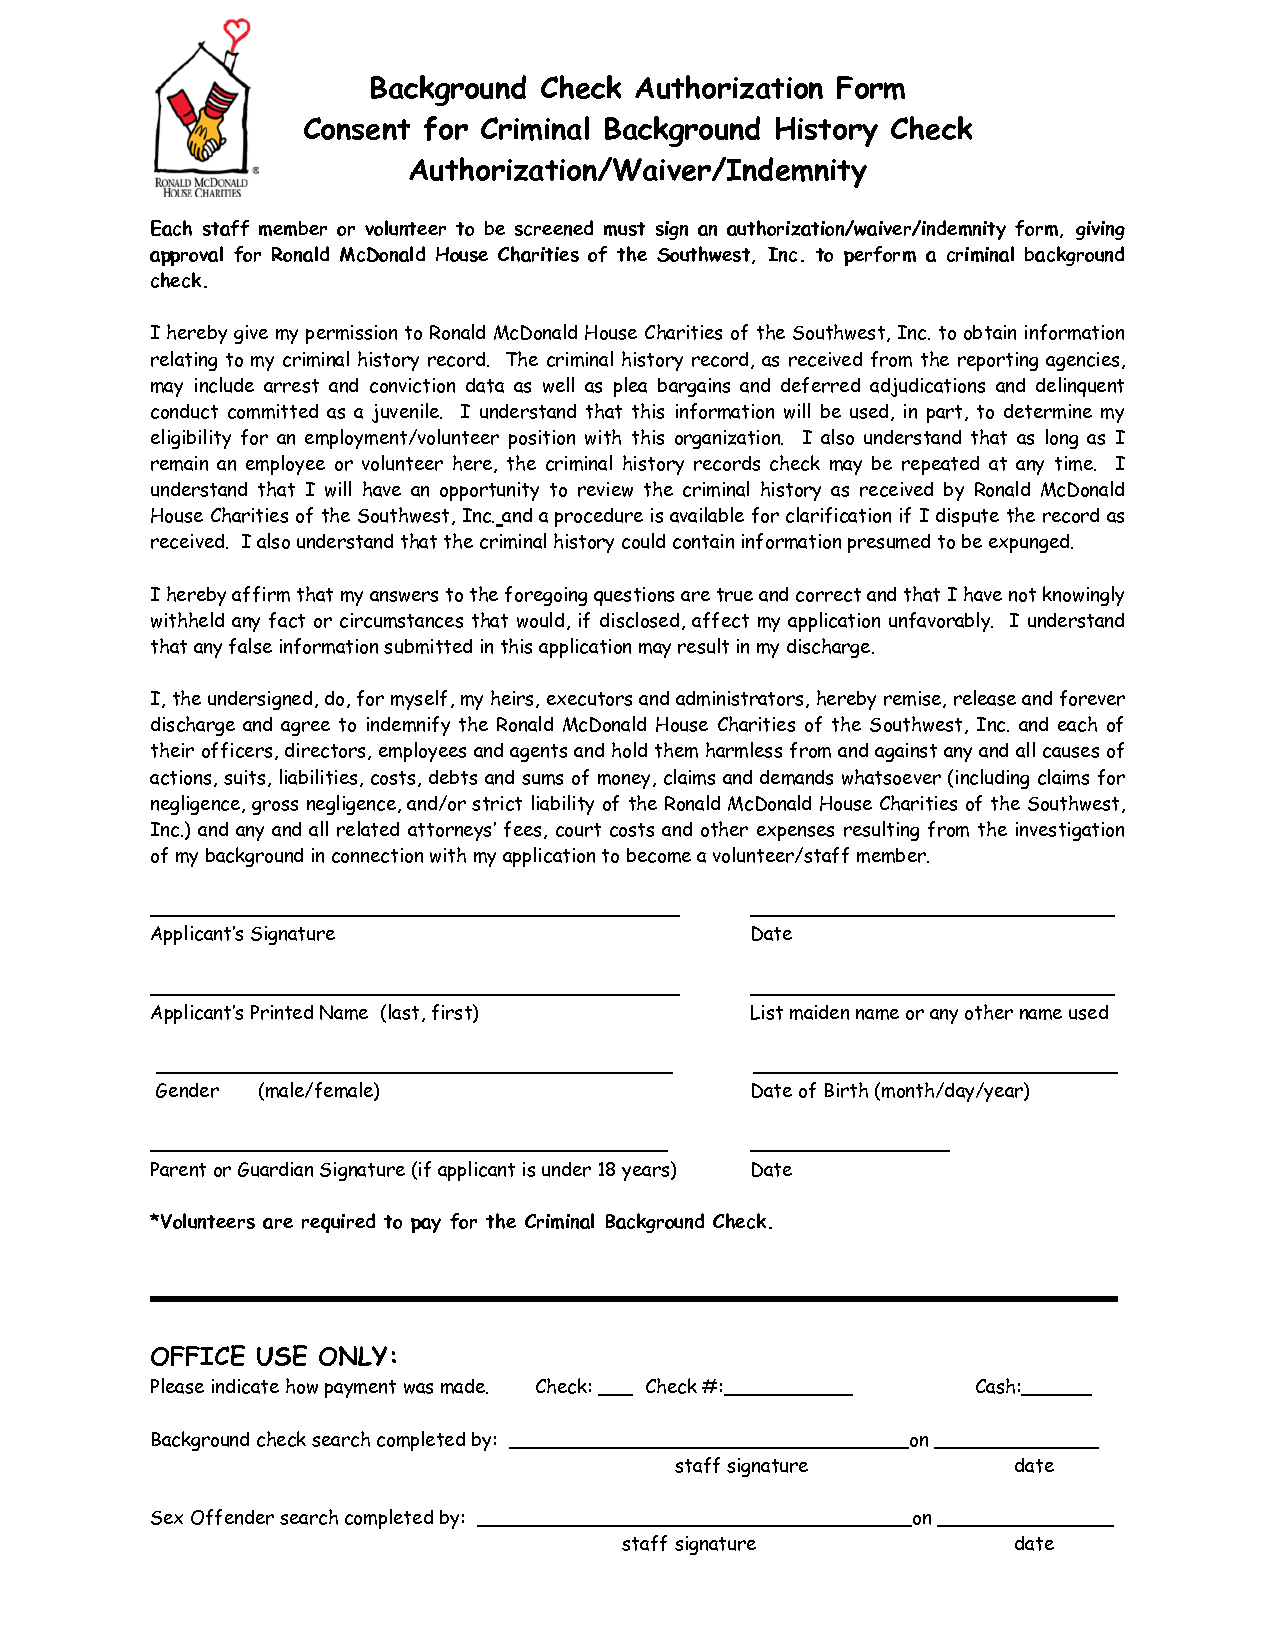 Check Authorization Form Template Check Out This Background Check